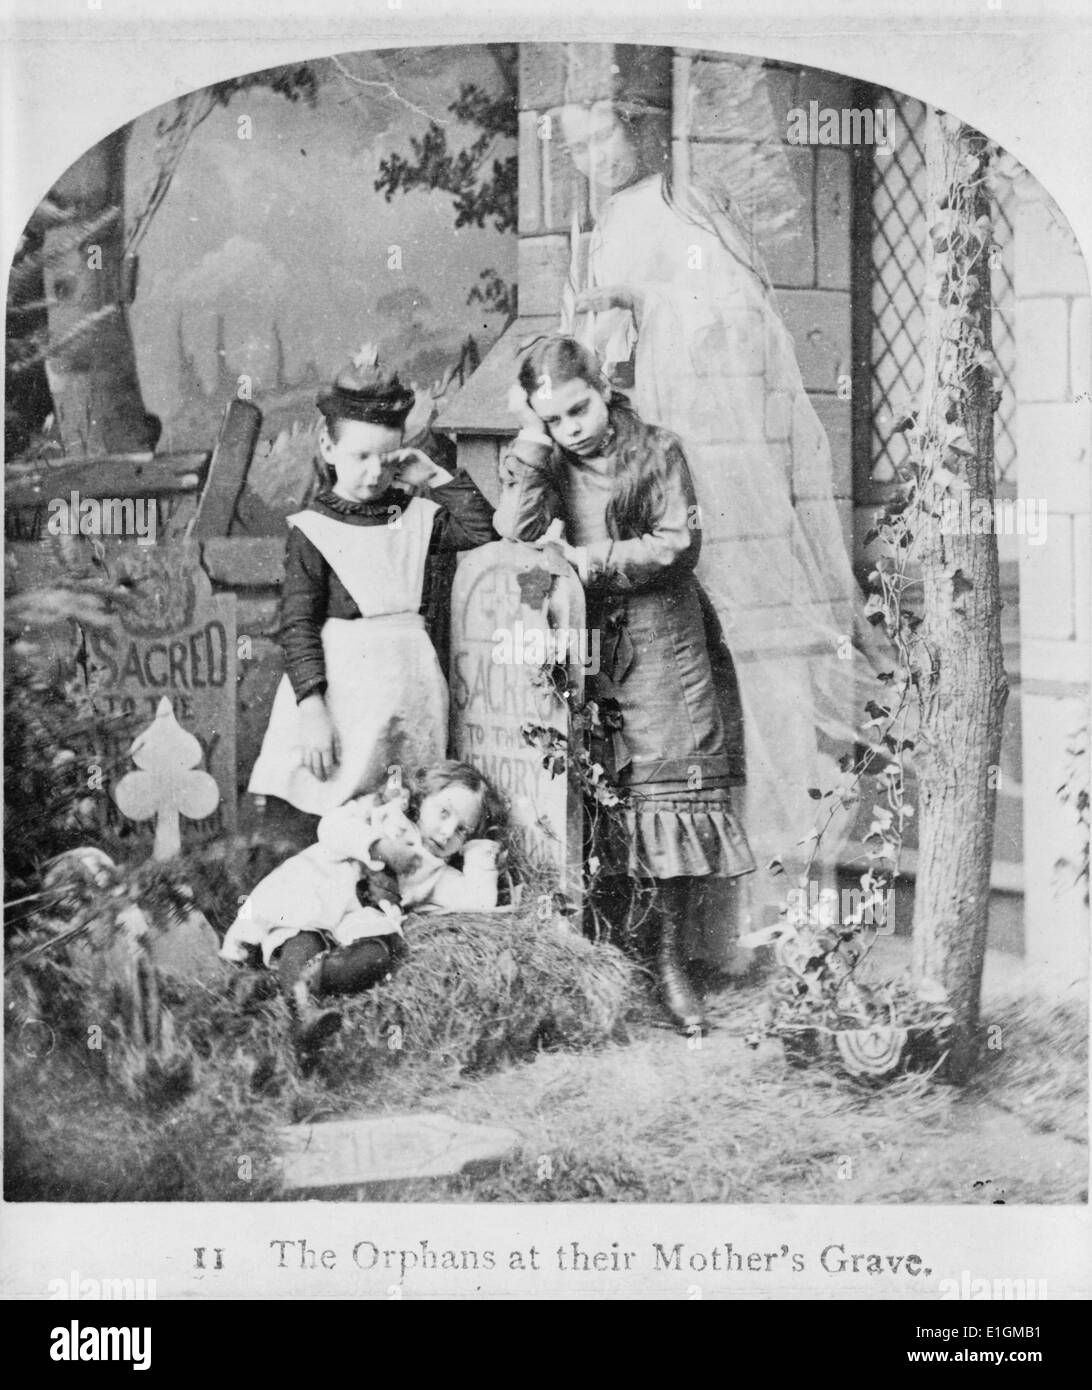 Photographic print of three orphans and the ghost of their mother at her grave. Dated 1889 - Stock Image